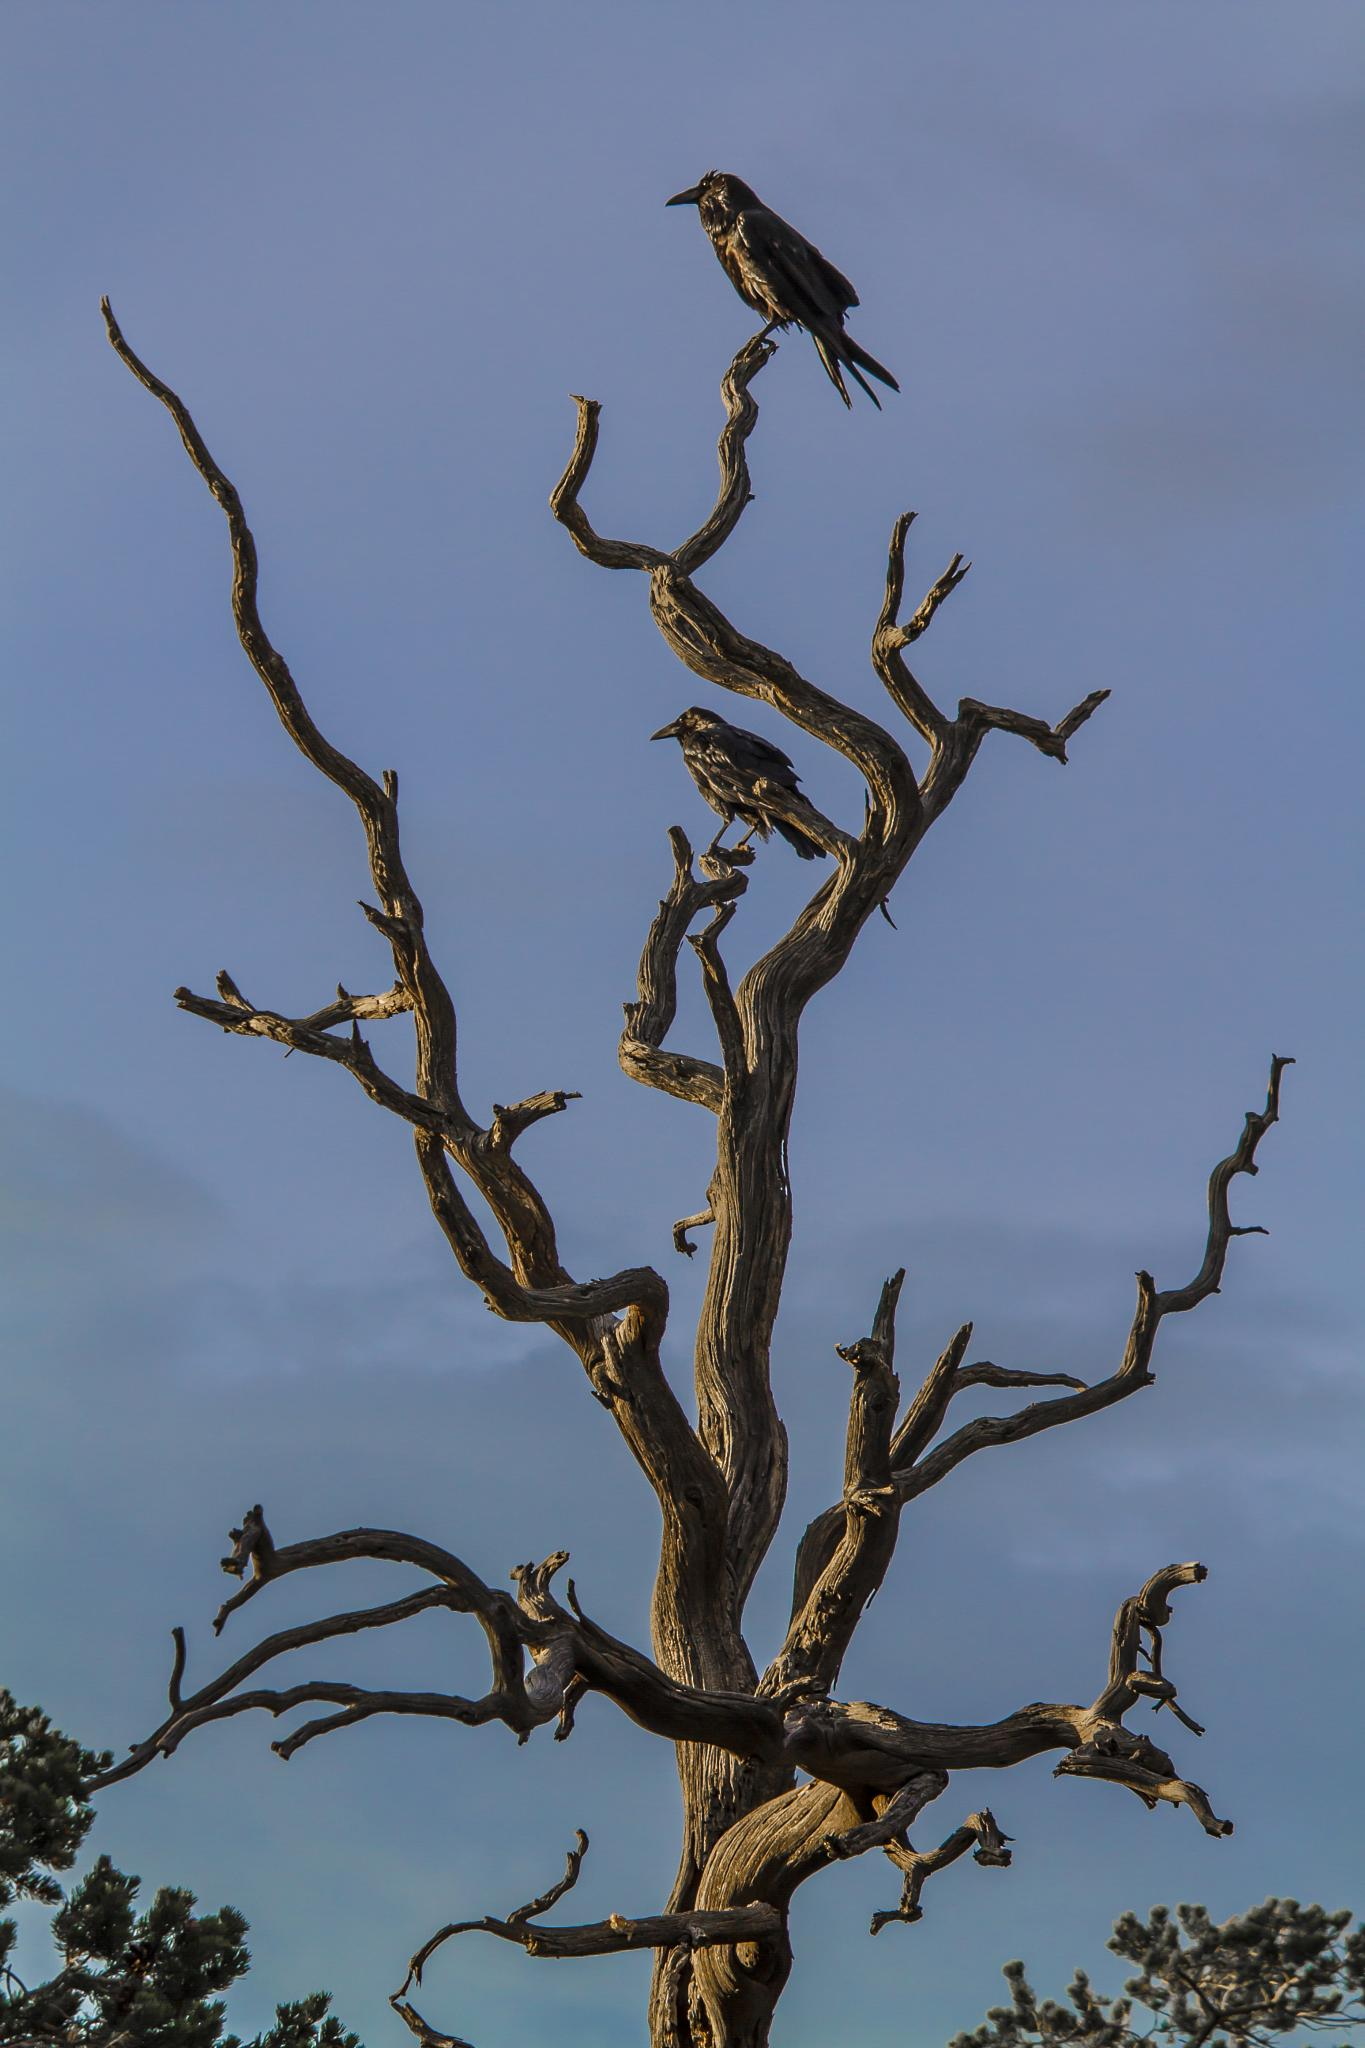 Crows by benzo